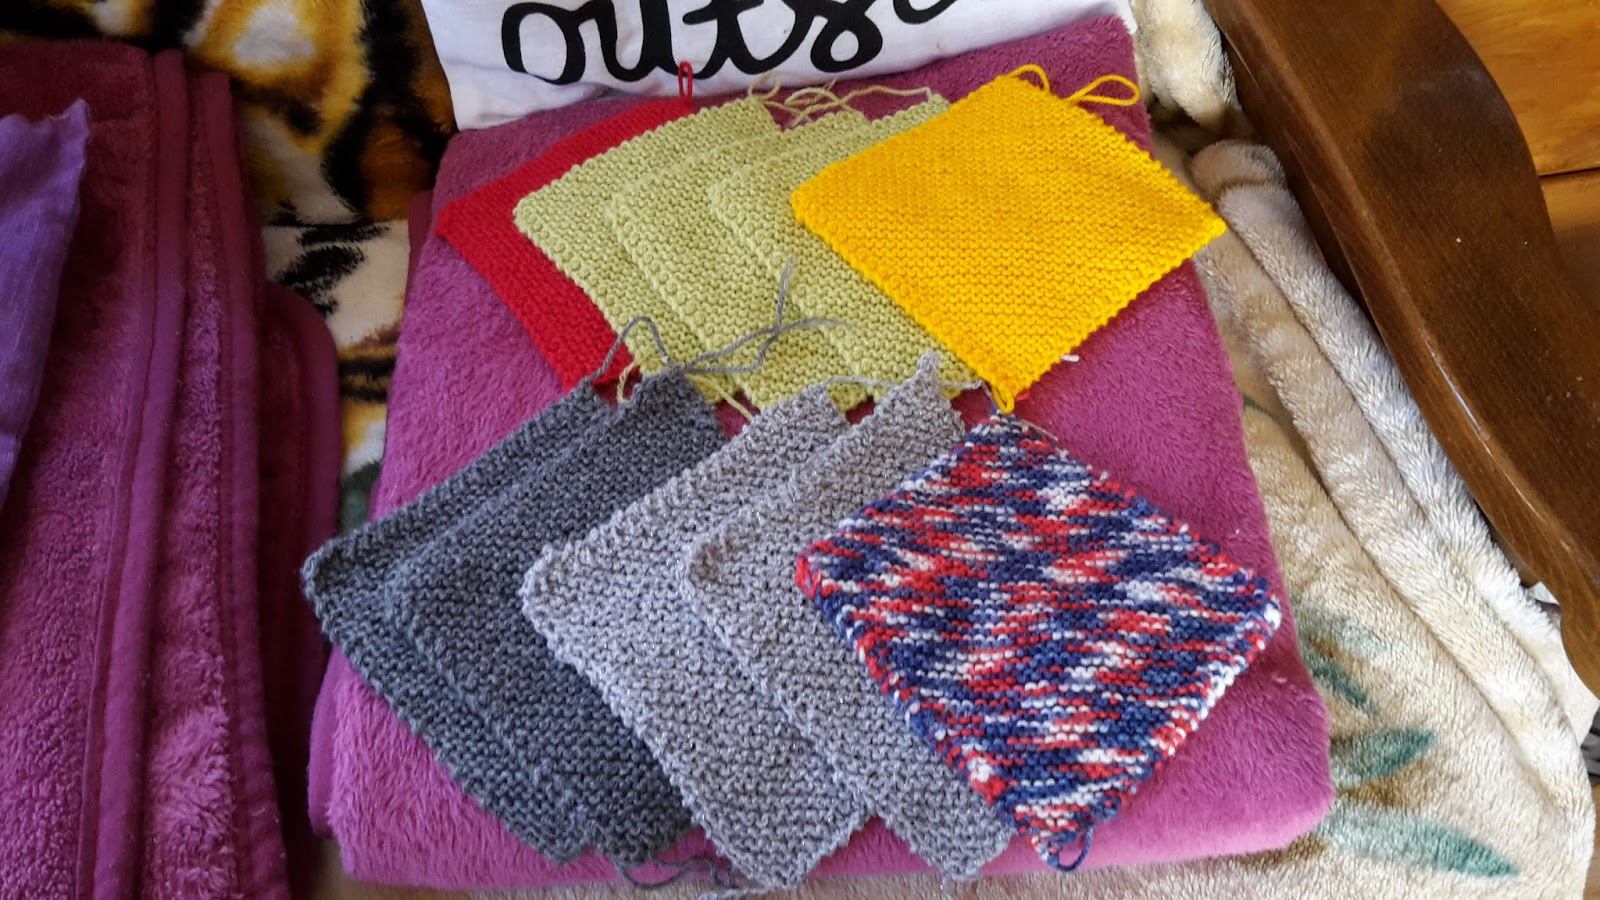 Knitting Blankets For Charity : The frugal handmade home charity knitting